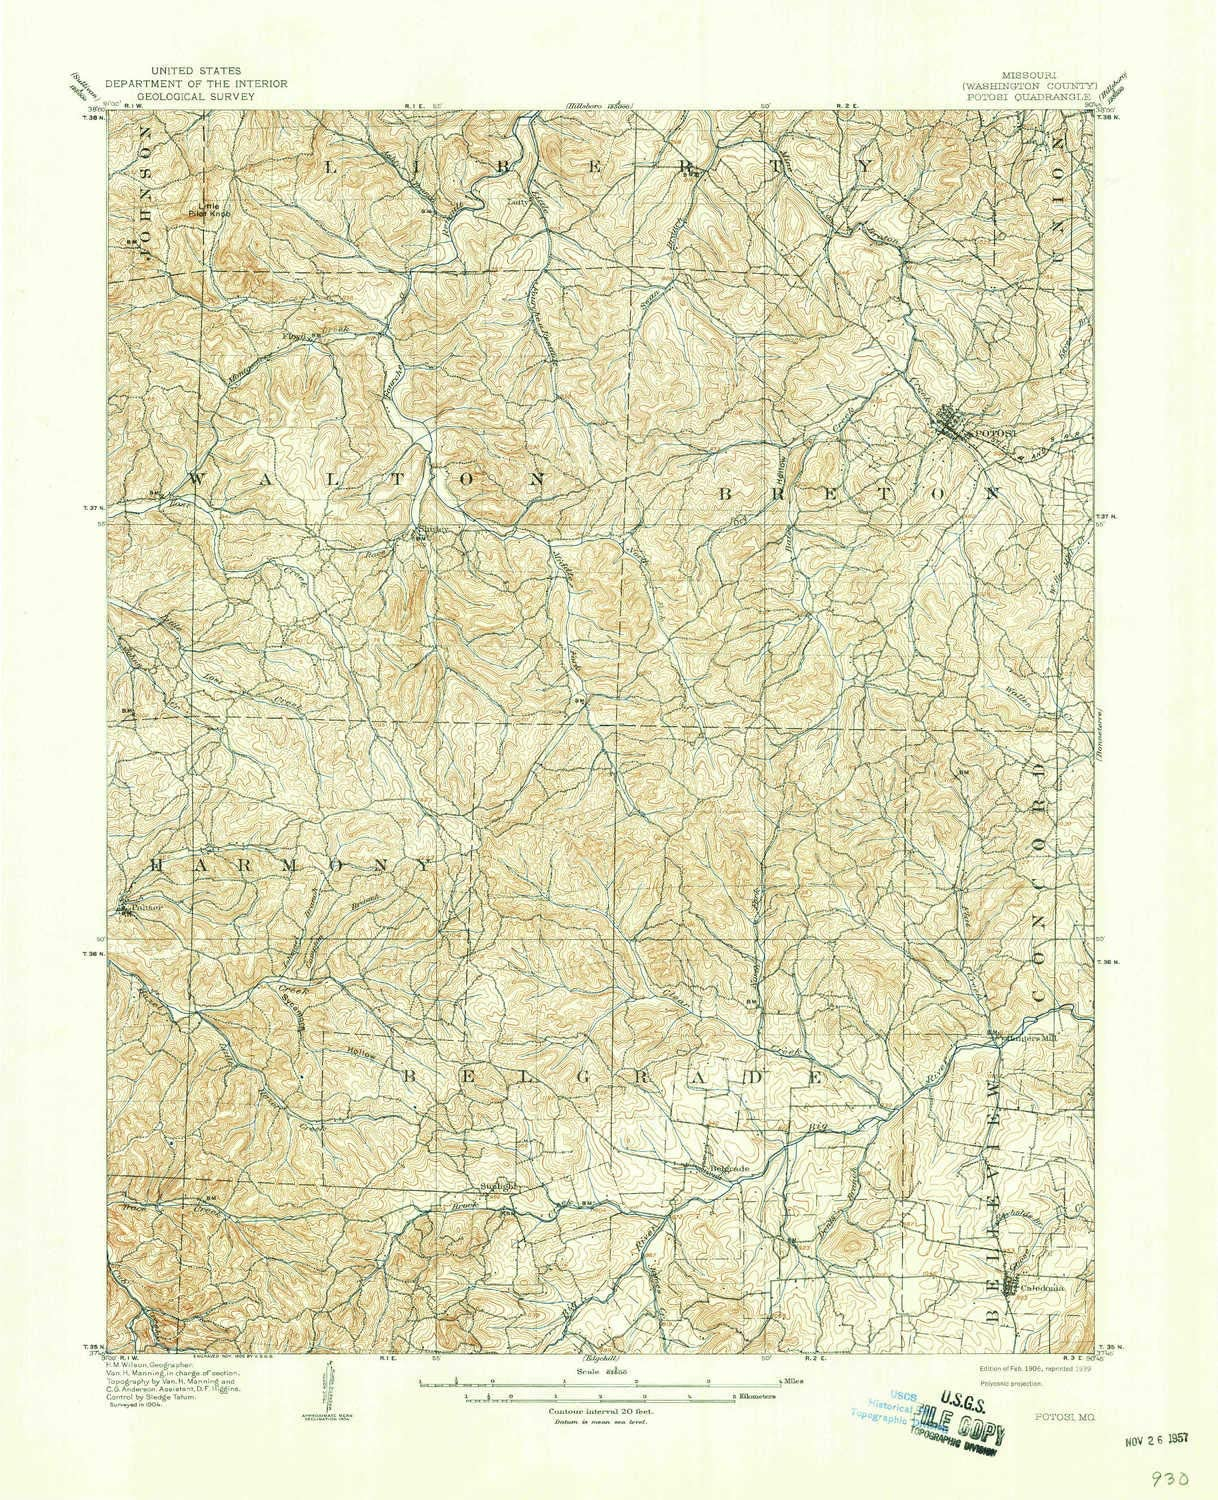 Updated 1939 1:62500 Scale 15 X 15 Minute Historical 21.1 x 17.1 in YellowMaps Potosi MO topo map 1906